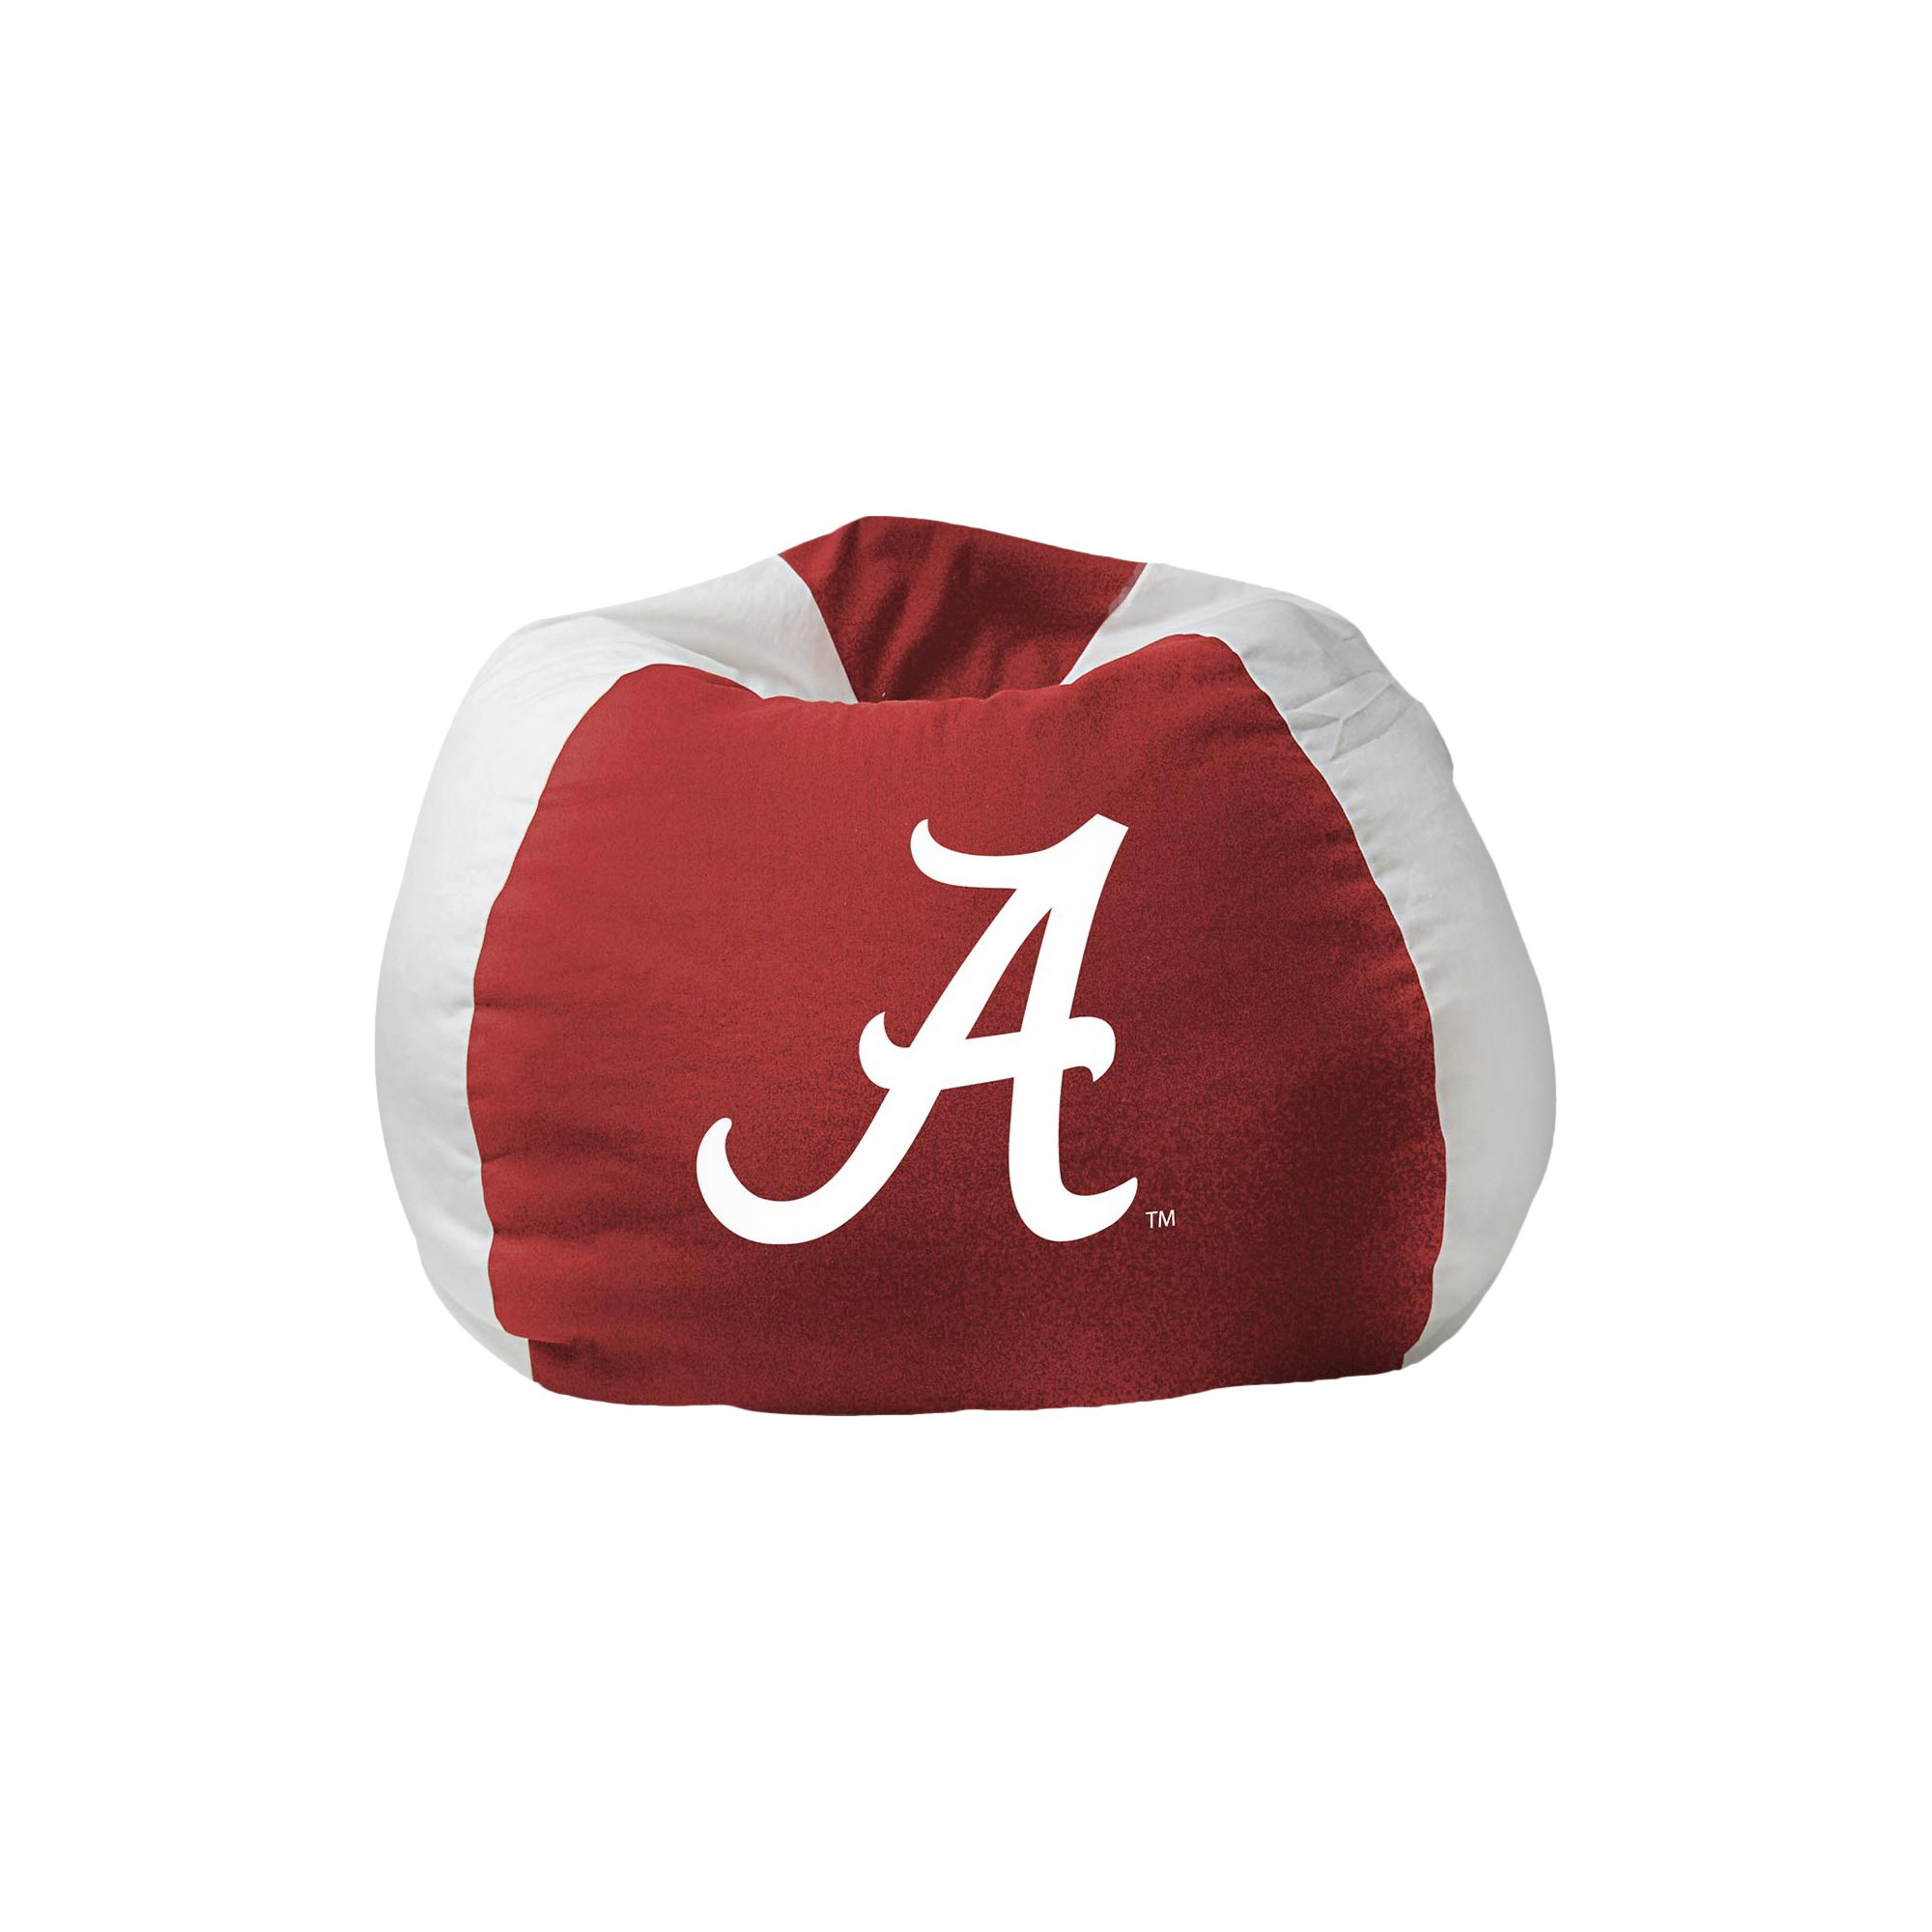 Ncaa Alabama Crimson Tide Bean Bag Chair